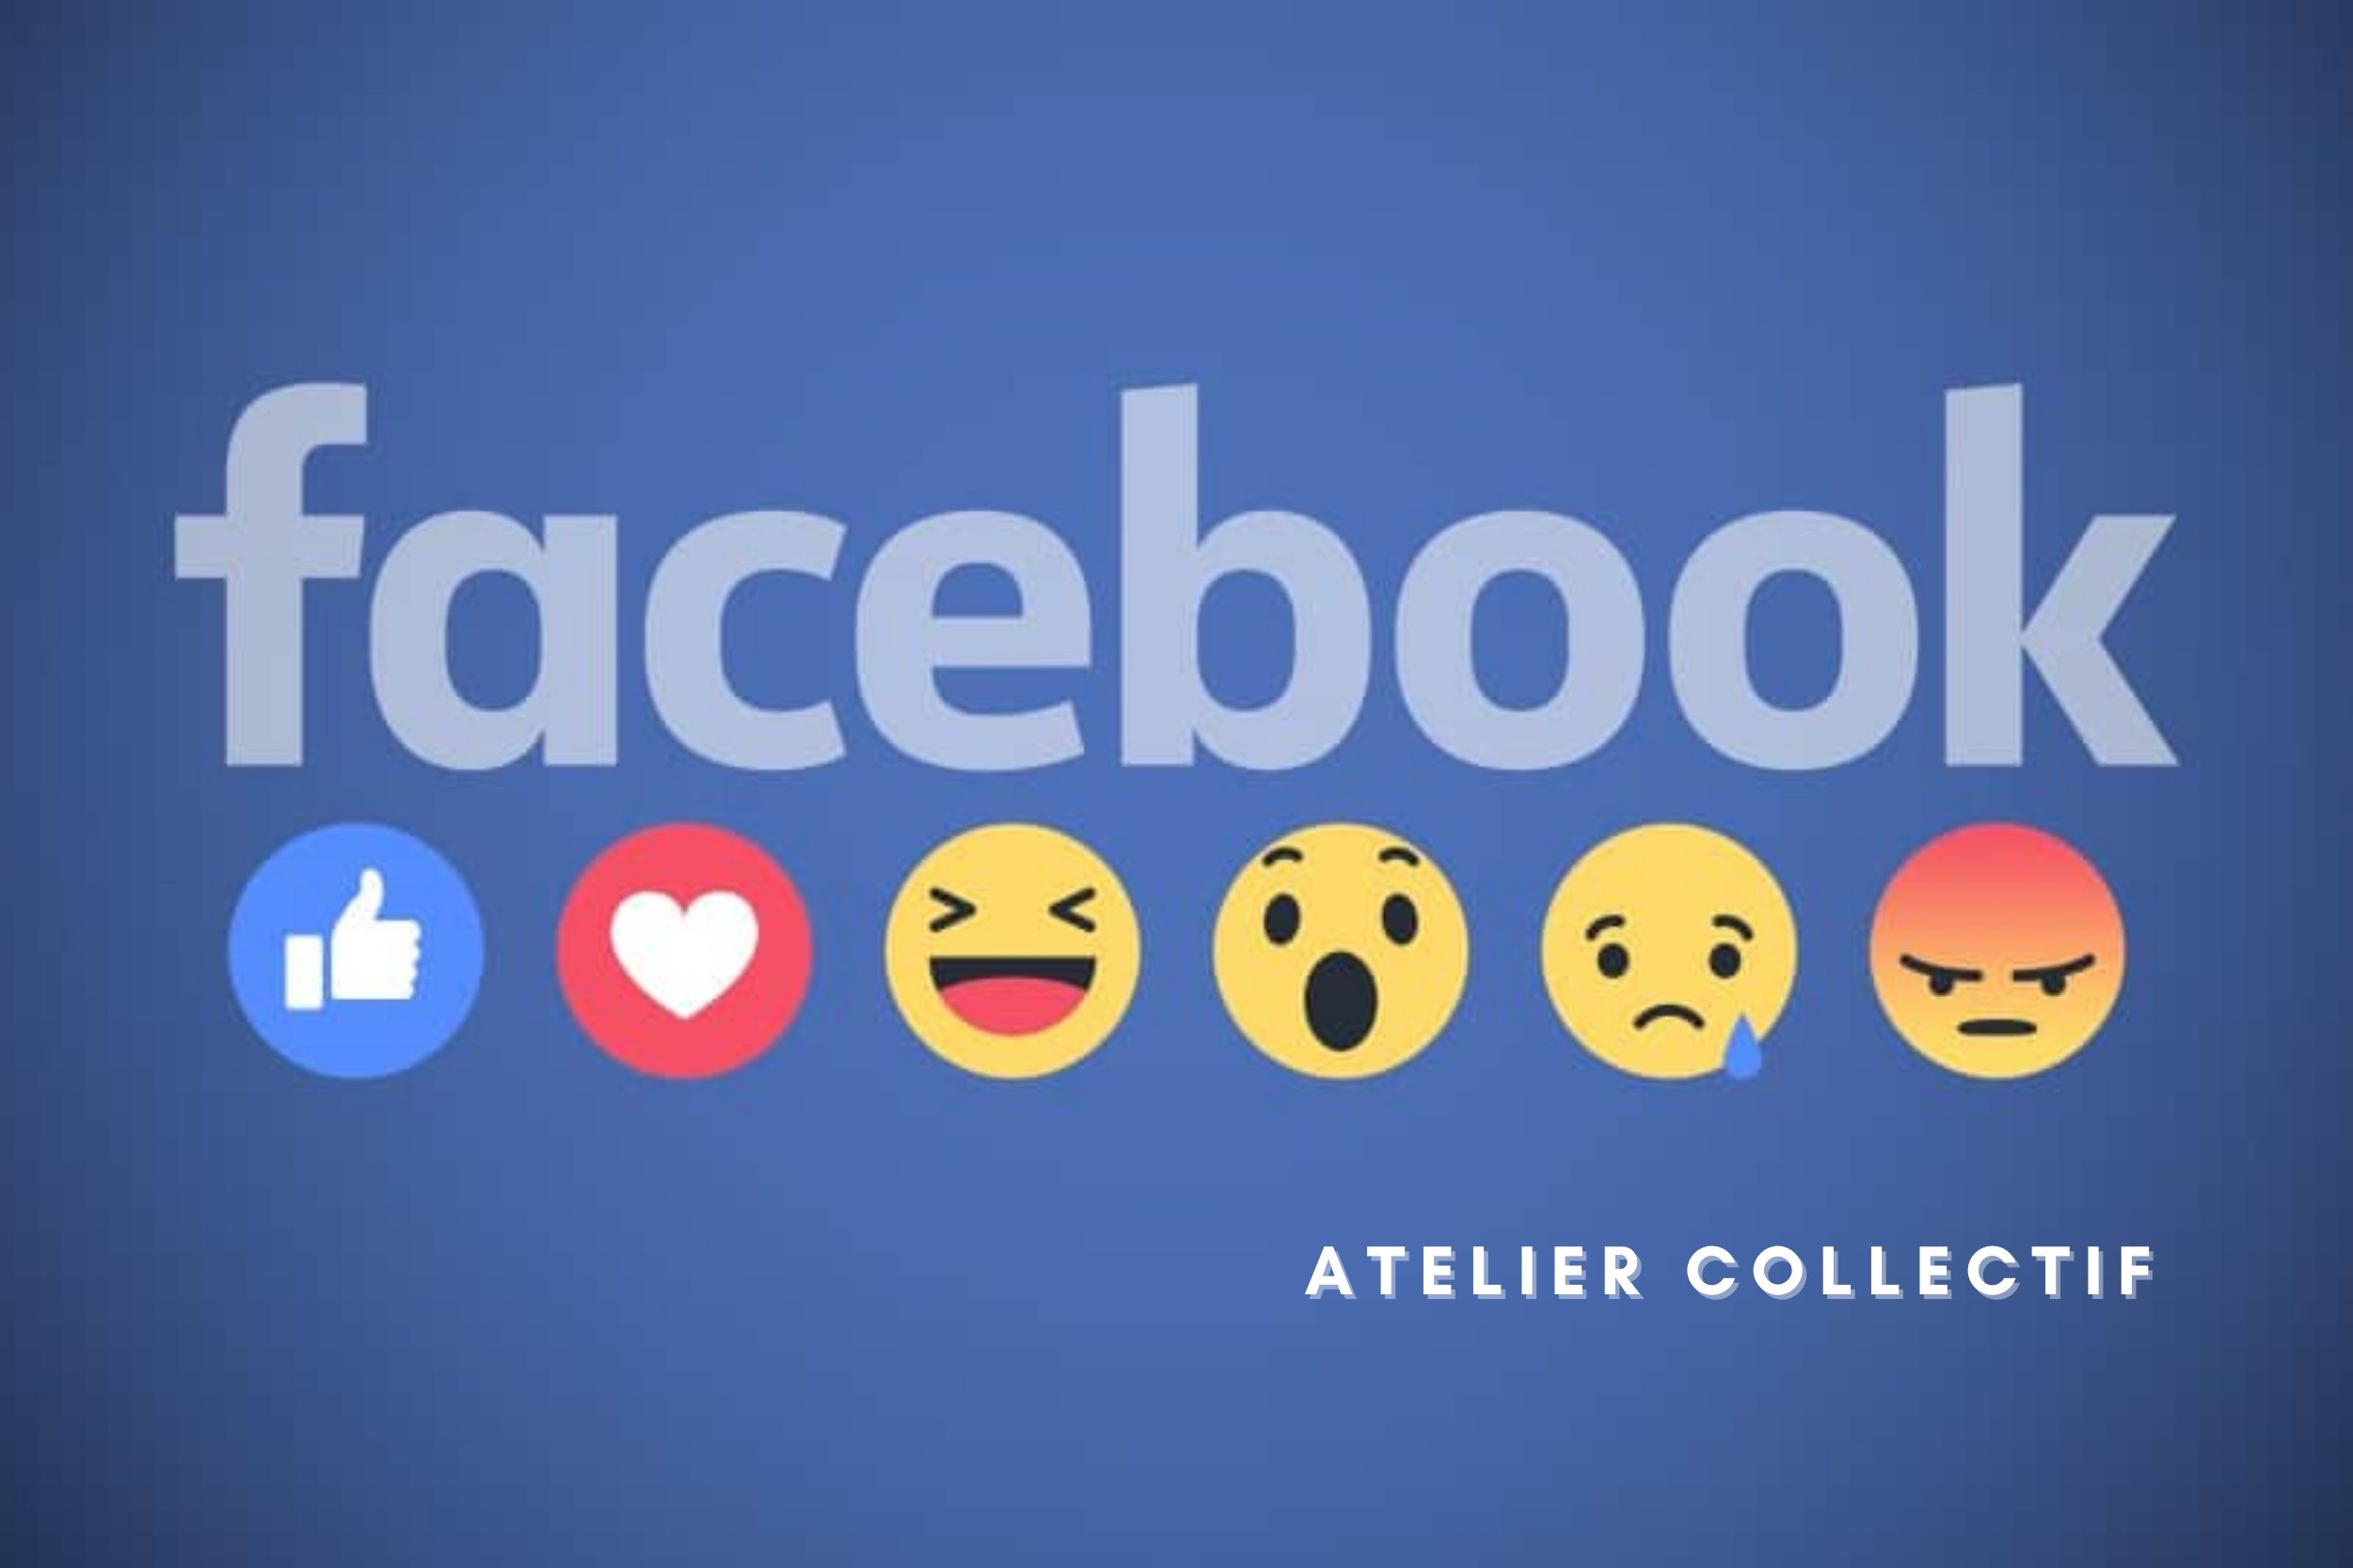 Atelier collectif Facebook business manager